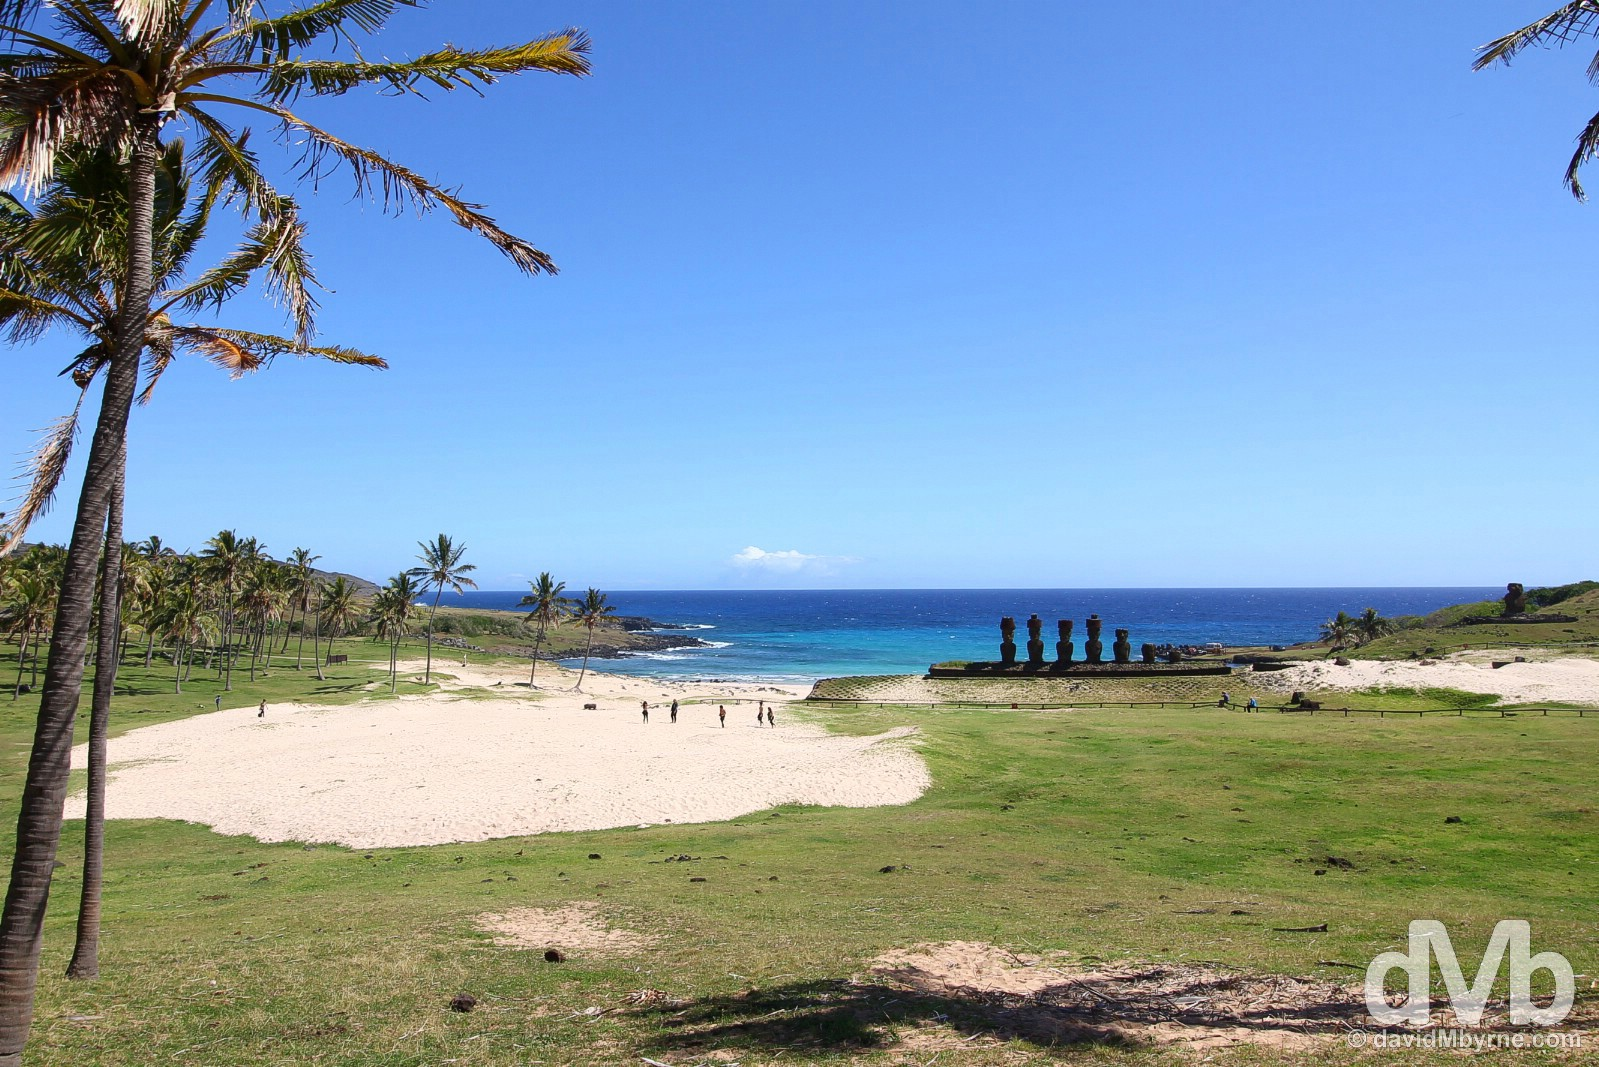 Anakena, Easter Island, Chile. October 1, 2015.